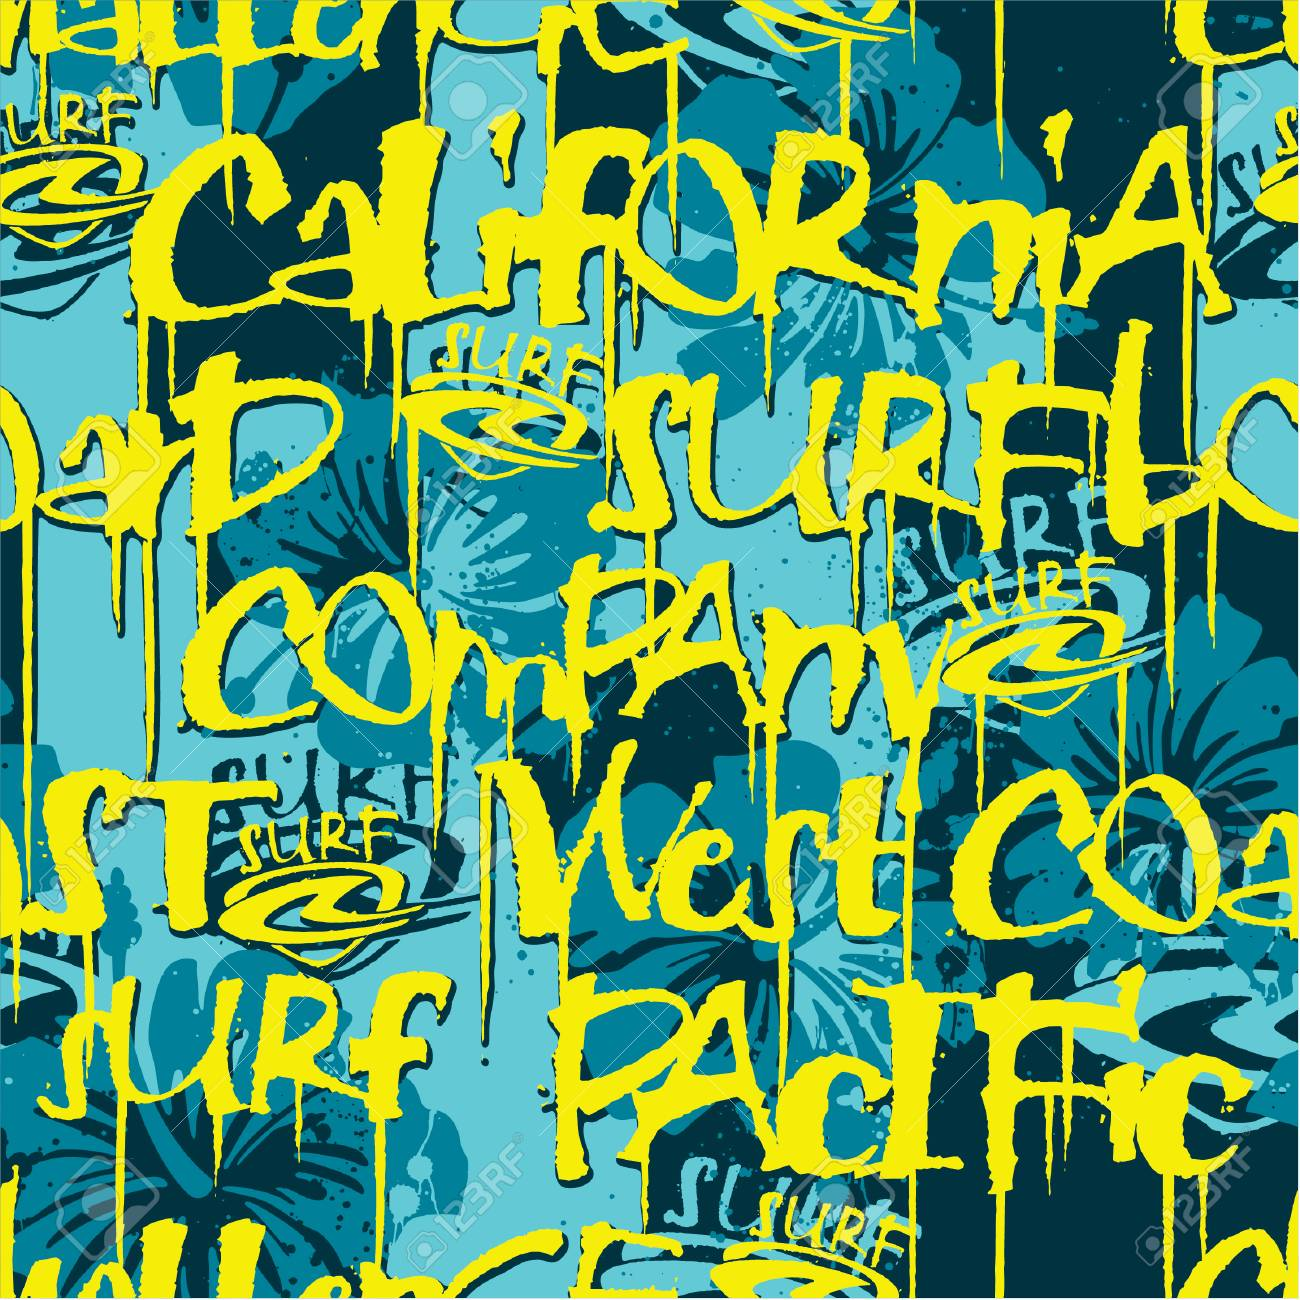 West Coast California surfing company seamless pattern, vector